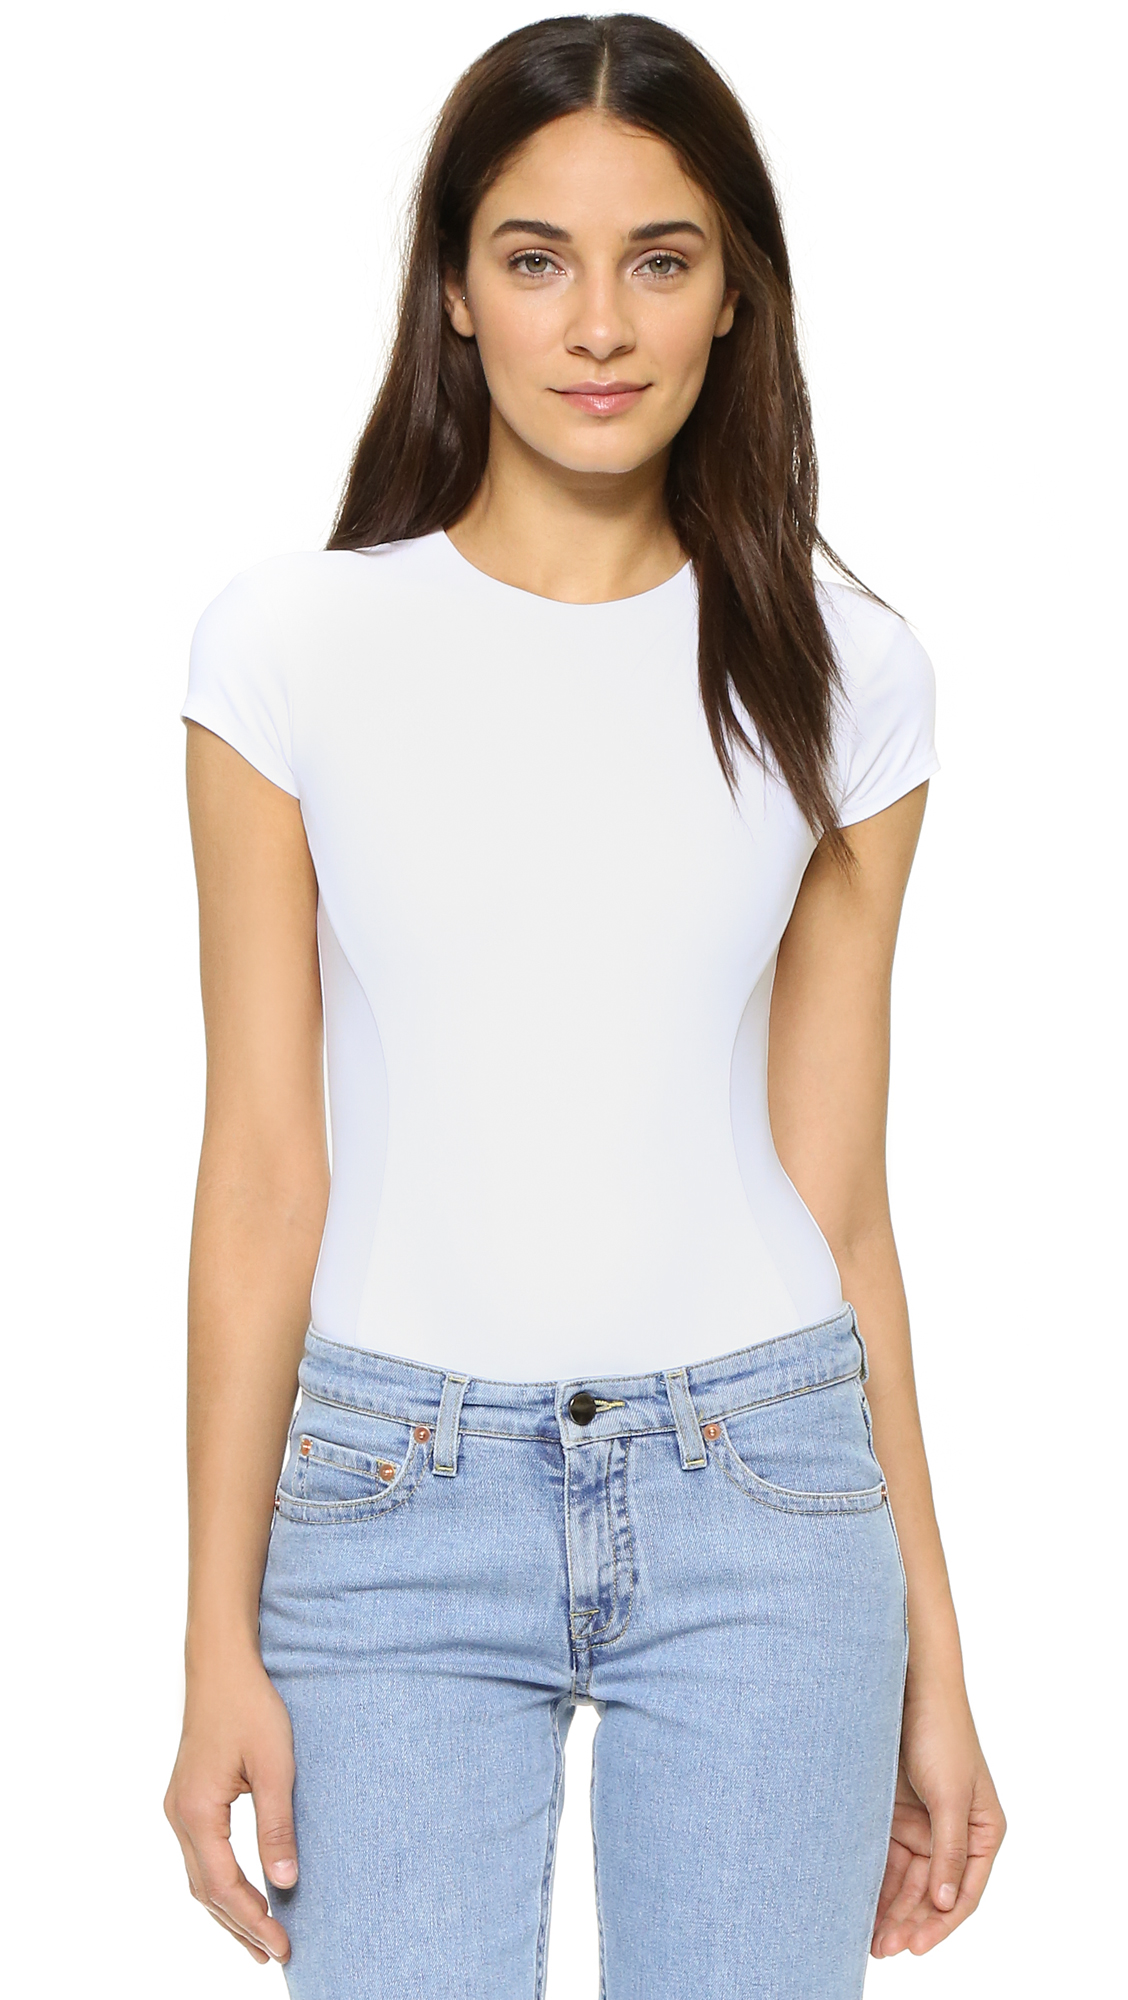 Alix Classic Collection Mulberry Thong Bodysuit - White at Shopbop